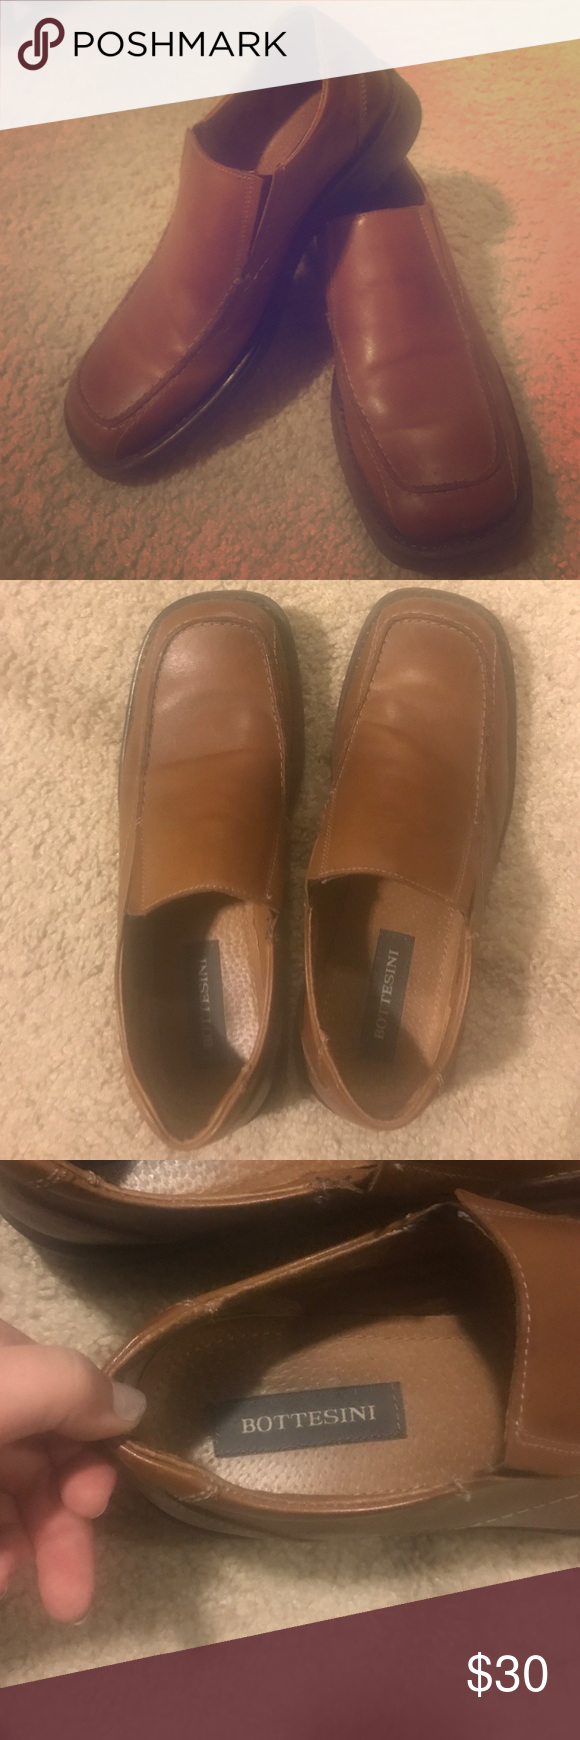 Perfection Bottesini - Made in Italy 🇮🇹 - 11M Perfection Bottesini - Made in Italy 🇮🇹 and that means QUALITY! - 11M - sole is in exquisite condition - brown leather up and liner - durable bottesini Shoes Loafers & Slip-Ons